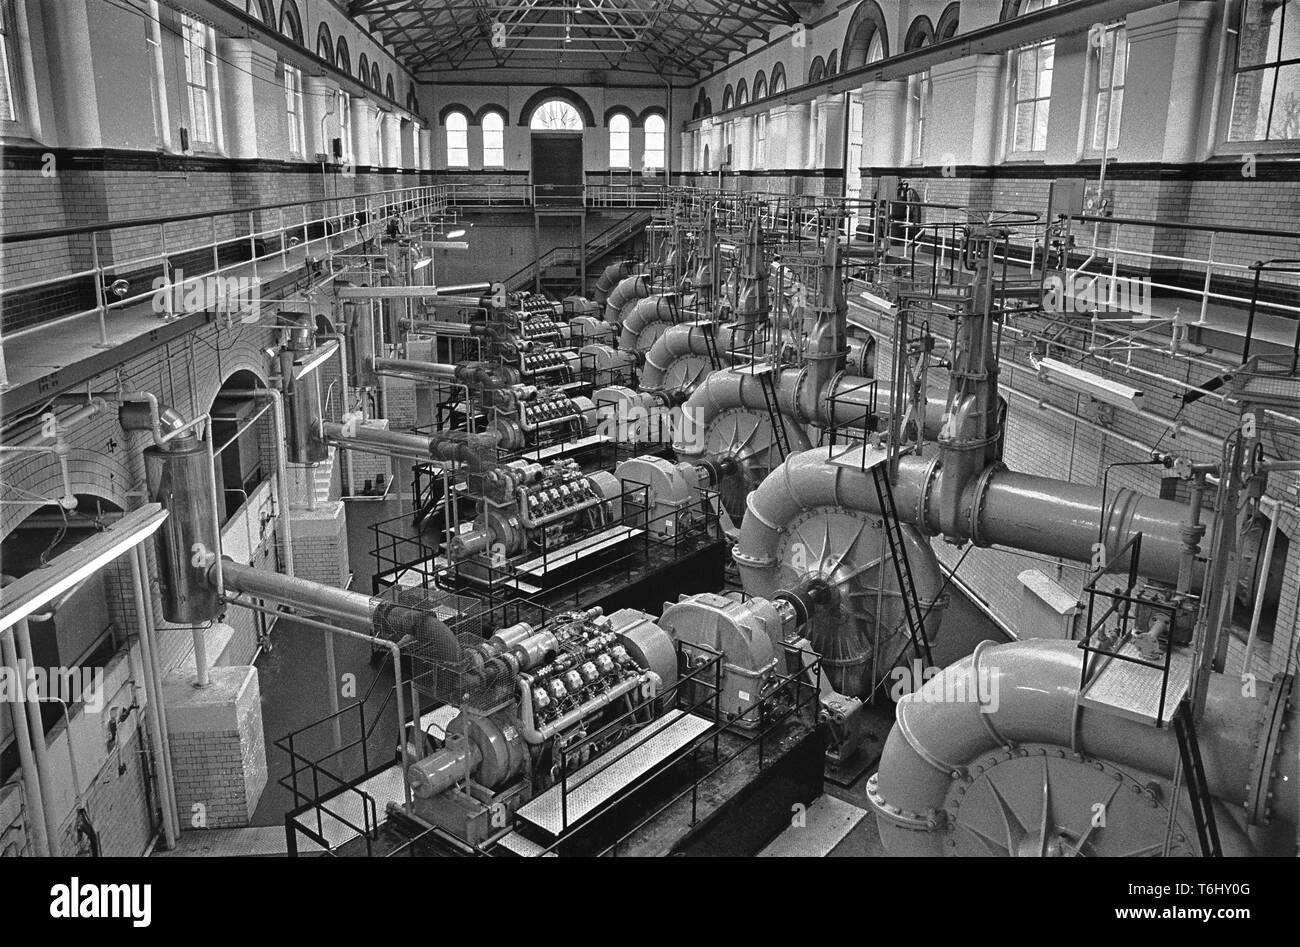 7/24  Tower Hamlets Abbey Mills Pumping Station 1979.nef - Stock Image